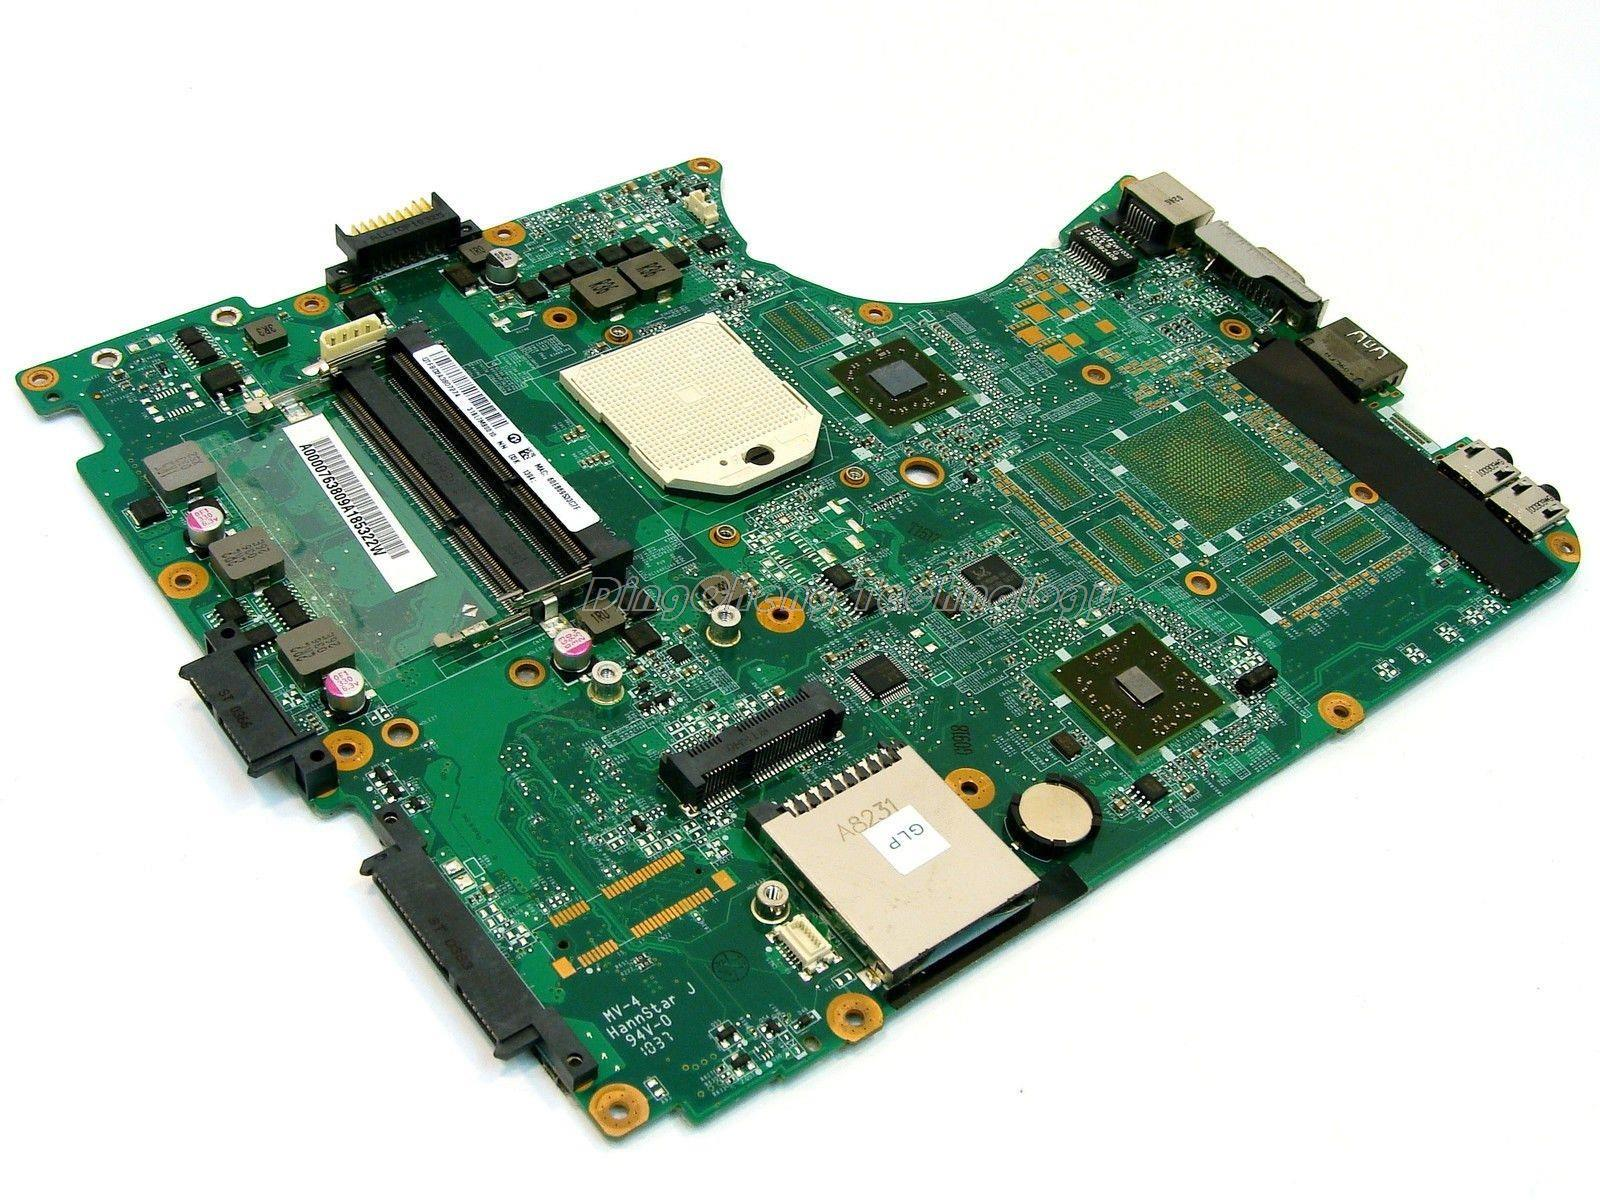 SHELI laptop Motherboard For Toshiba L655D A000076380 DA0BL7MB6D0 DDR3 integrated graphics card 100% fully tested nokotion sps v000198120 for toshiba satellite a500 a505 motherboard intel gm45 ddr2 6050a2323101 mb a01